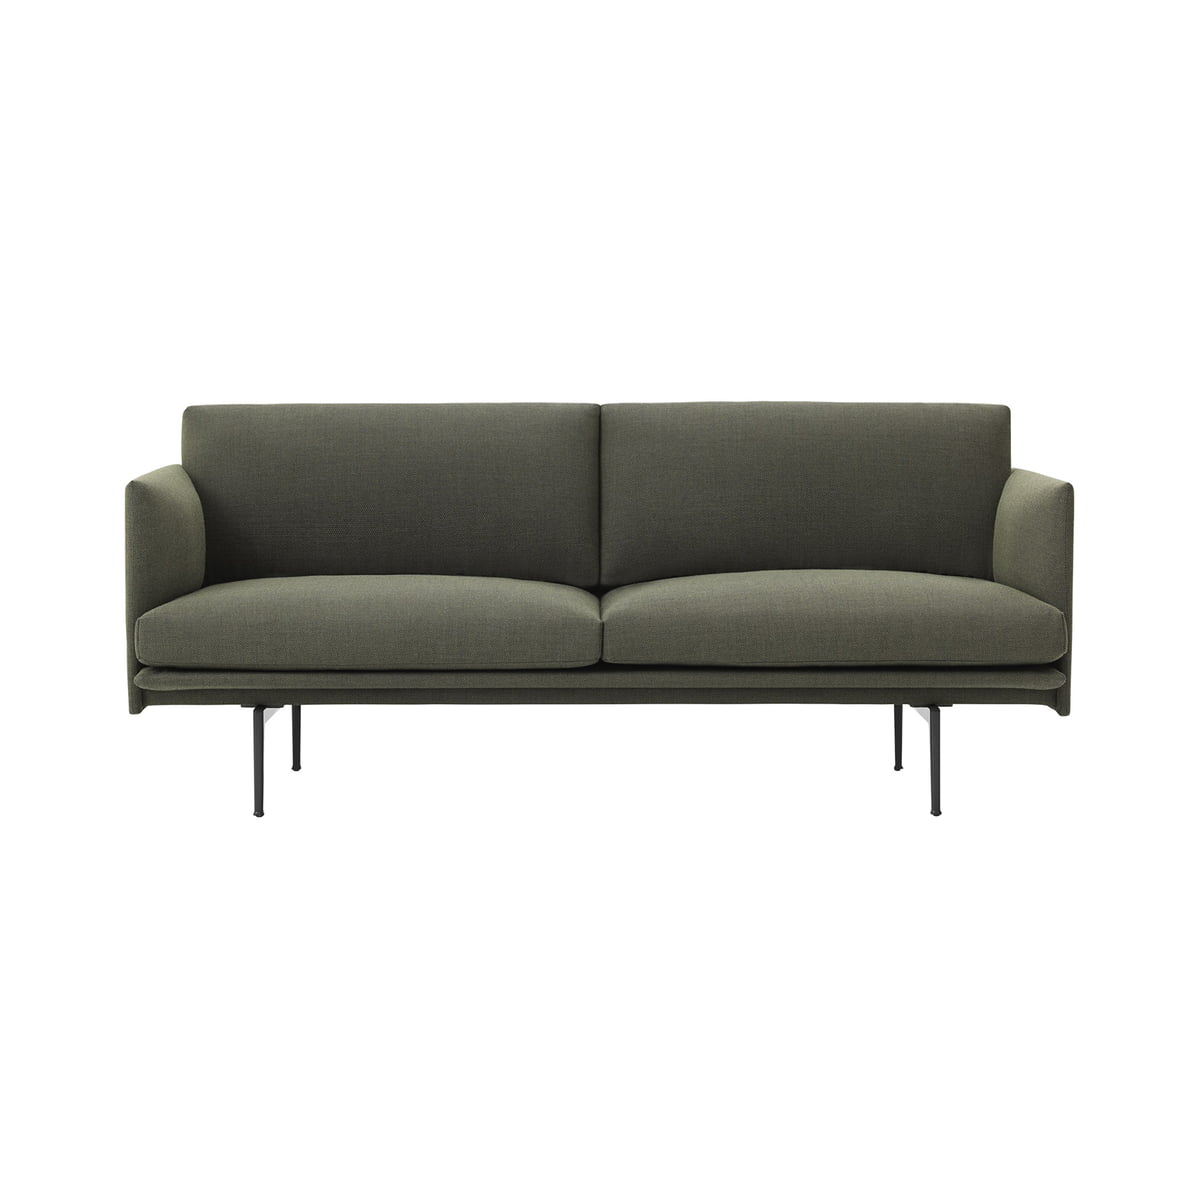 Outline Sofa 2 Seater By Muuto In The Shop